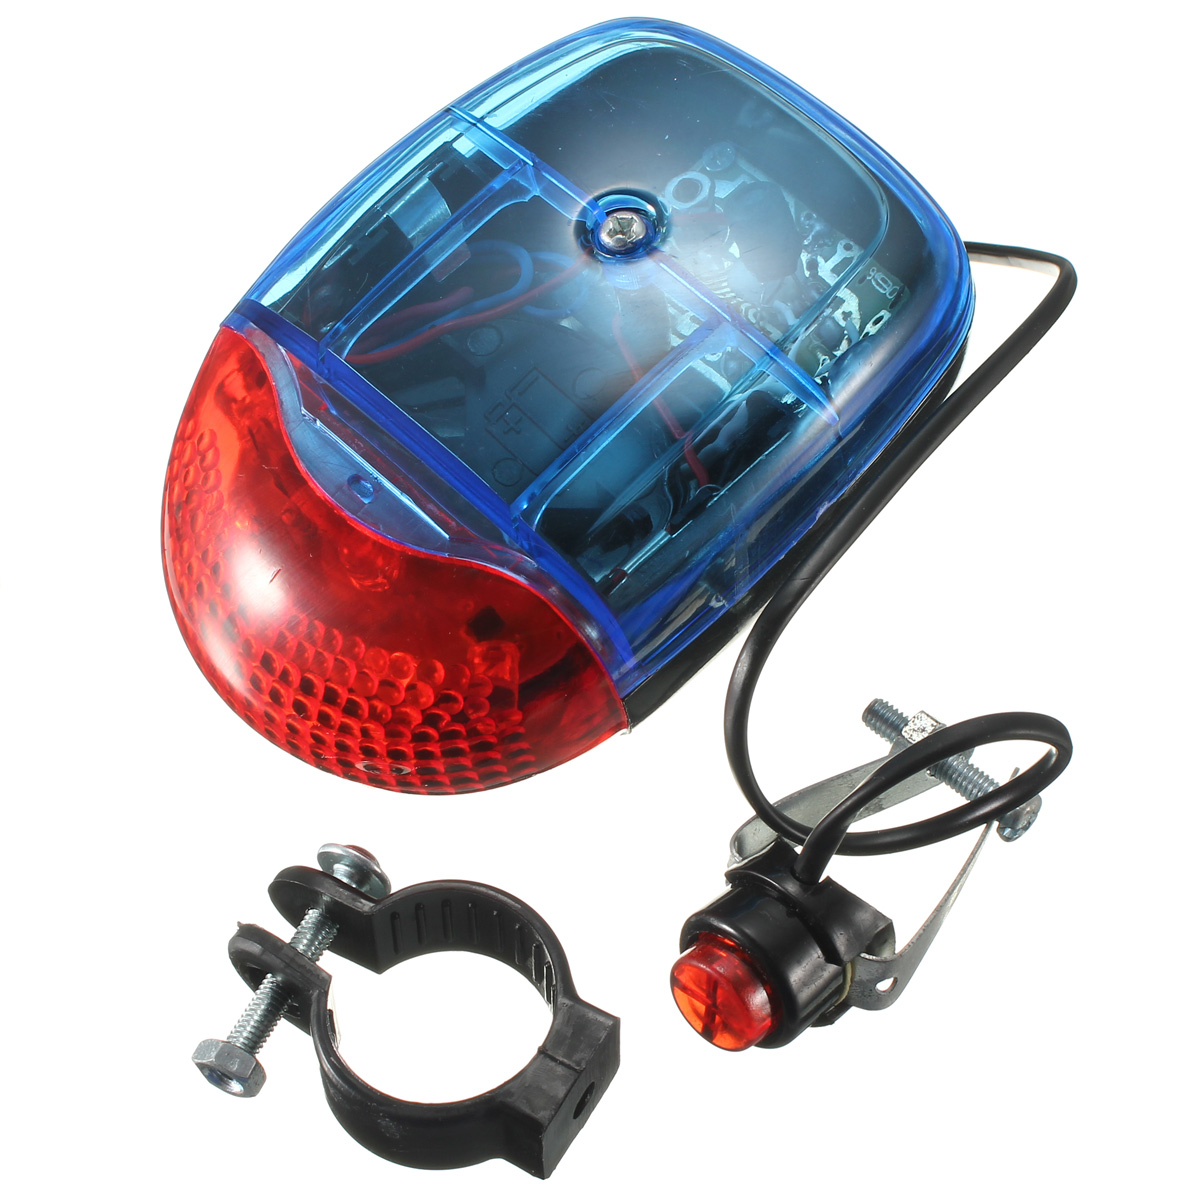 Cycling Bicycle Bike Warning Light LED Electronic Horn Bell Alarm Siren Sound Alertor